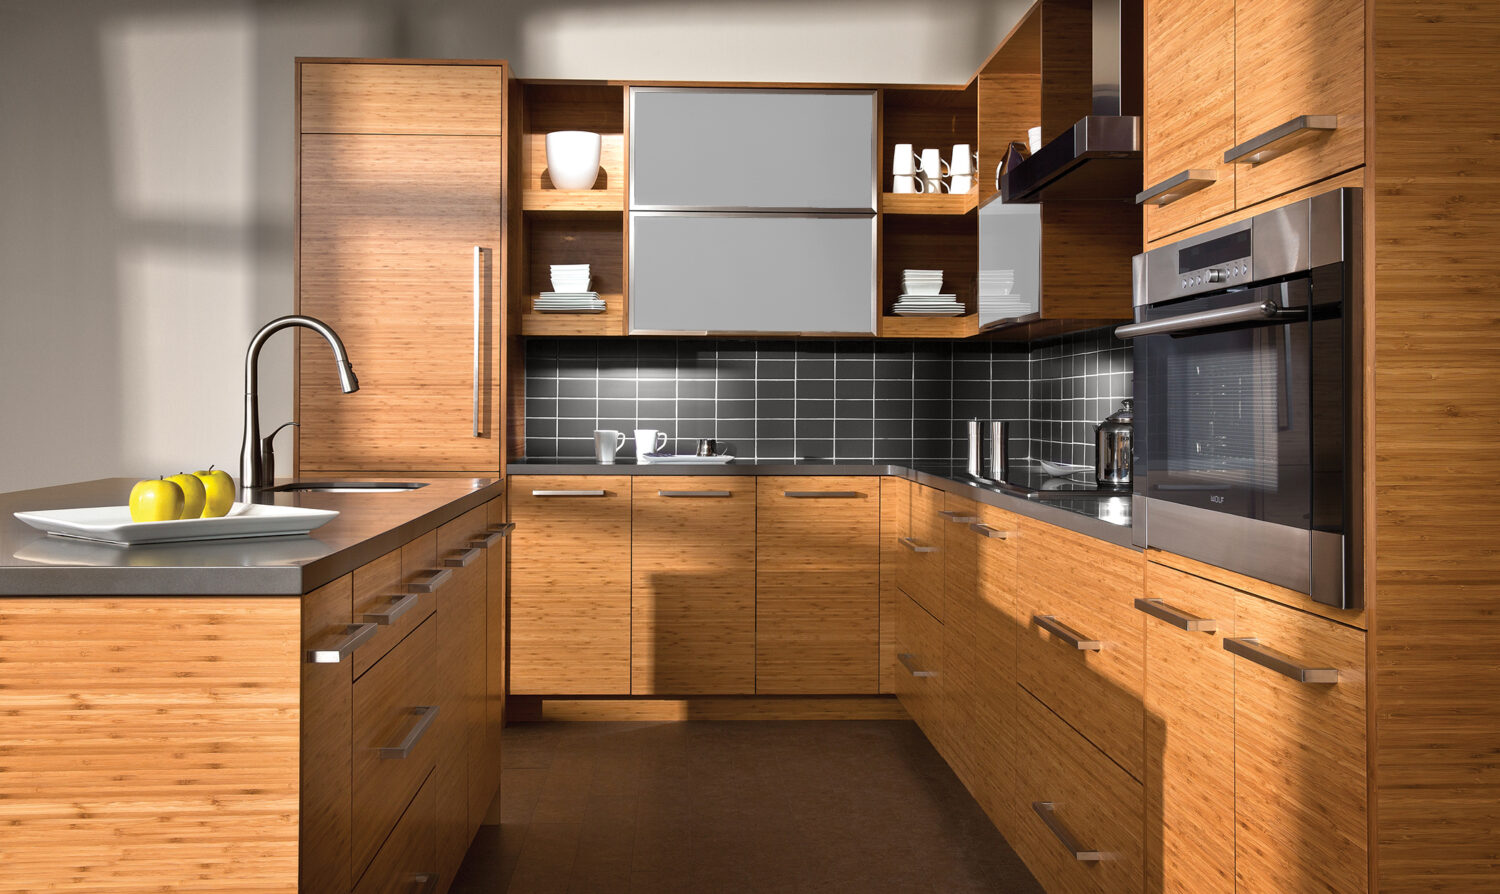 A contemporary style kitchen with warm bamboo cabinets from Dura Supreme Cabinetry.